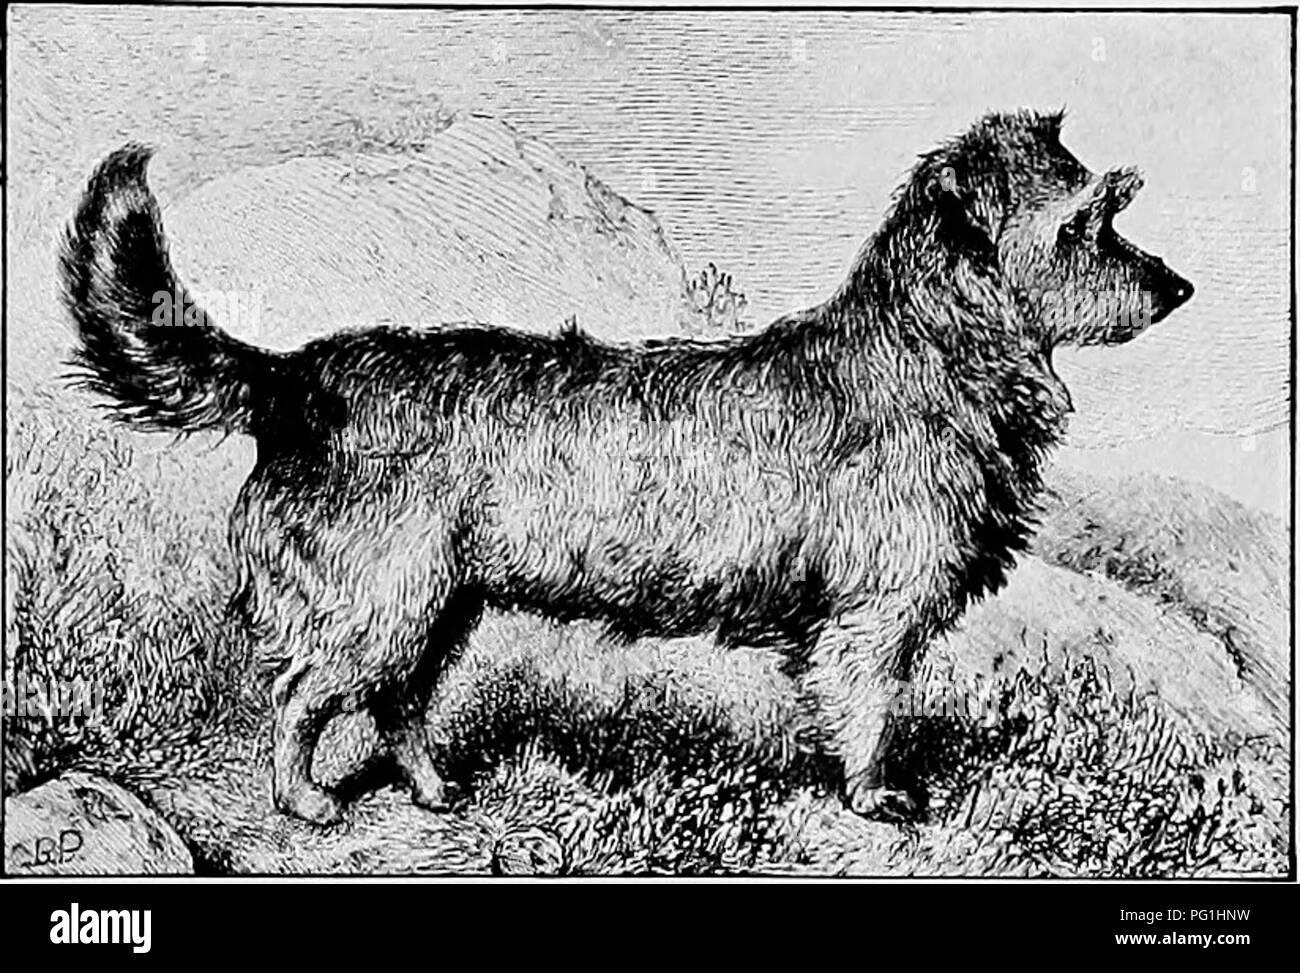 """. The new book of the dog; a comprehensive natural history of British dogs and their foreign relatives, with chapters on law, breeding, kennel management, and veterinary treatment. Dogs. 405 CHAPTER XLIII. THE SKYE TERRIER. BY CAPTAIN W. WILMER AND R. LEIGHTON. """" From the dim shieling on the misty island, Mountains divide us and a world of seas ; Yet still our hearts are true, our hearts are Highland, And we in dreams behold the Hebrides."""" THAT the Skye Terrier should be called """" the Heavenly Breed """" is a tribute to the favour in which he is held by his admirers. Certainly  Stock Photo"""